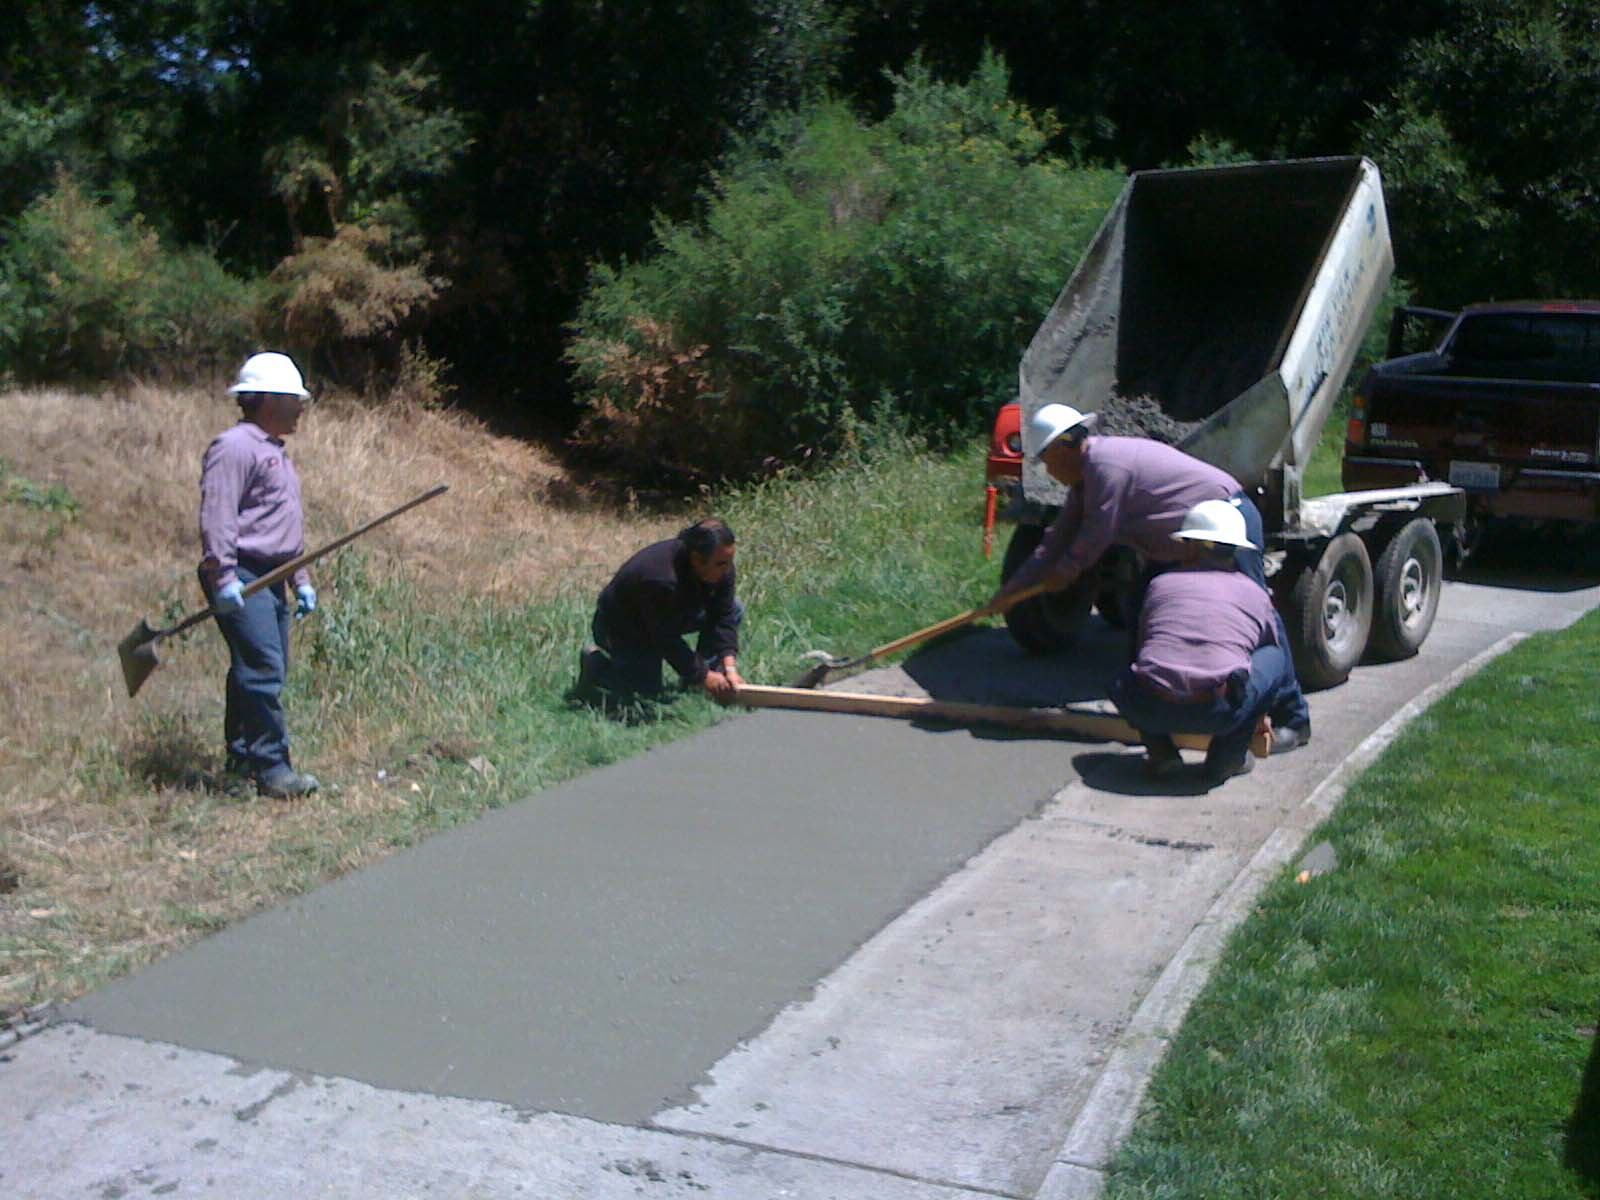 Stanford golf course superintendent 39 s blog 2010 05 21 for Cleaning concrete paths